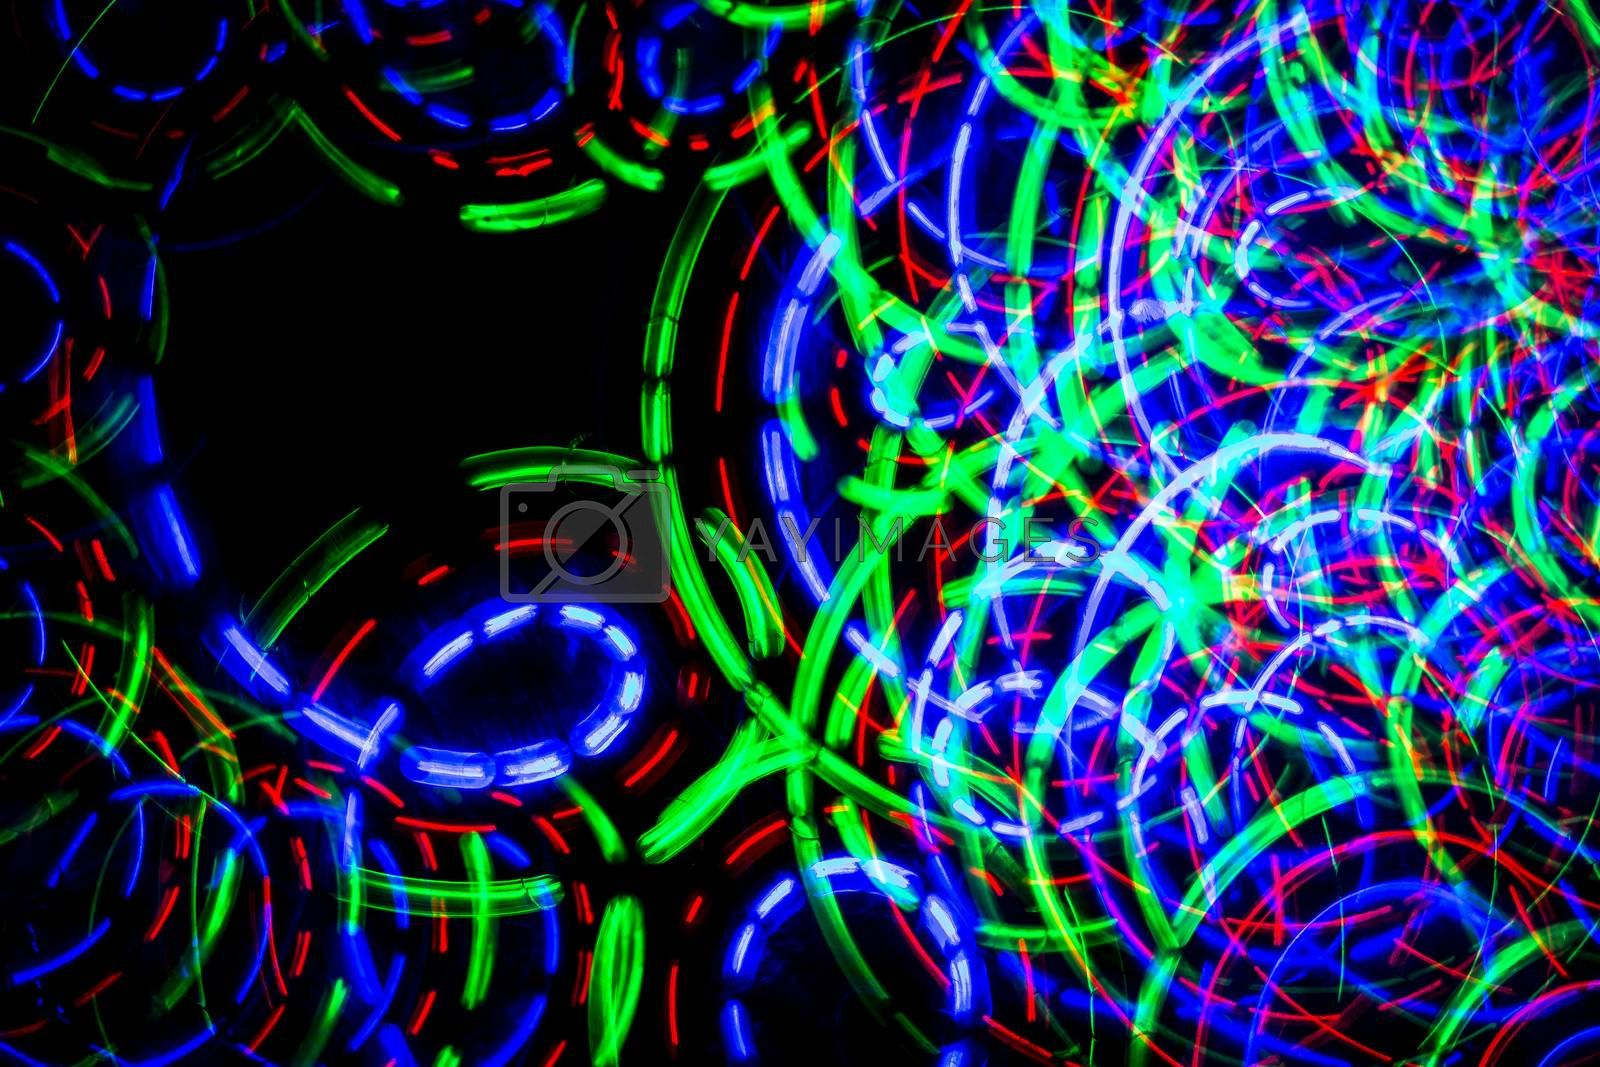 Lines and circles of colored light forming chaos